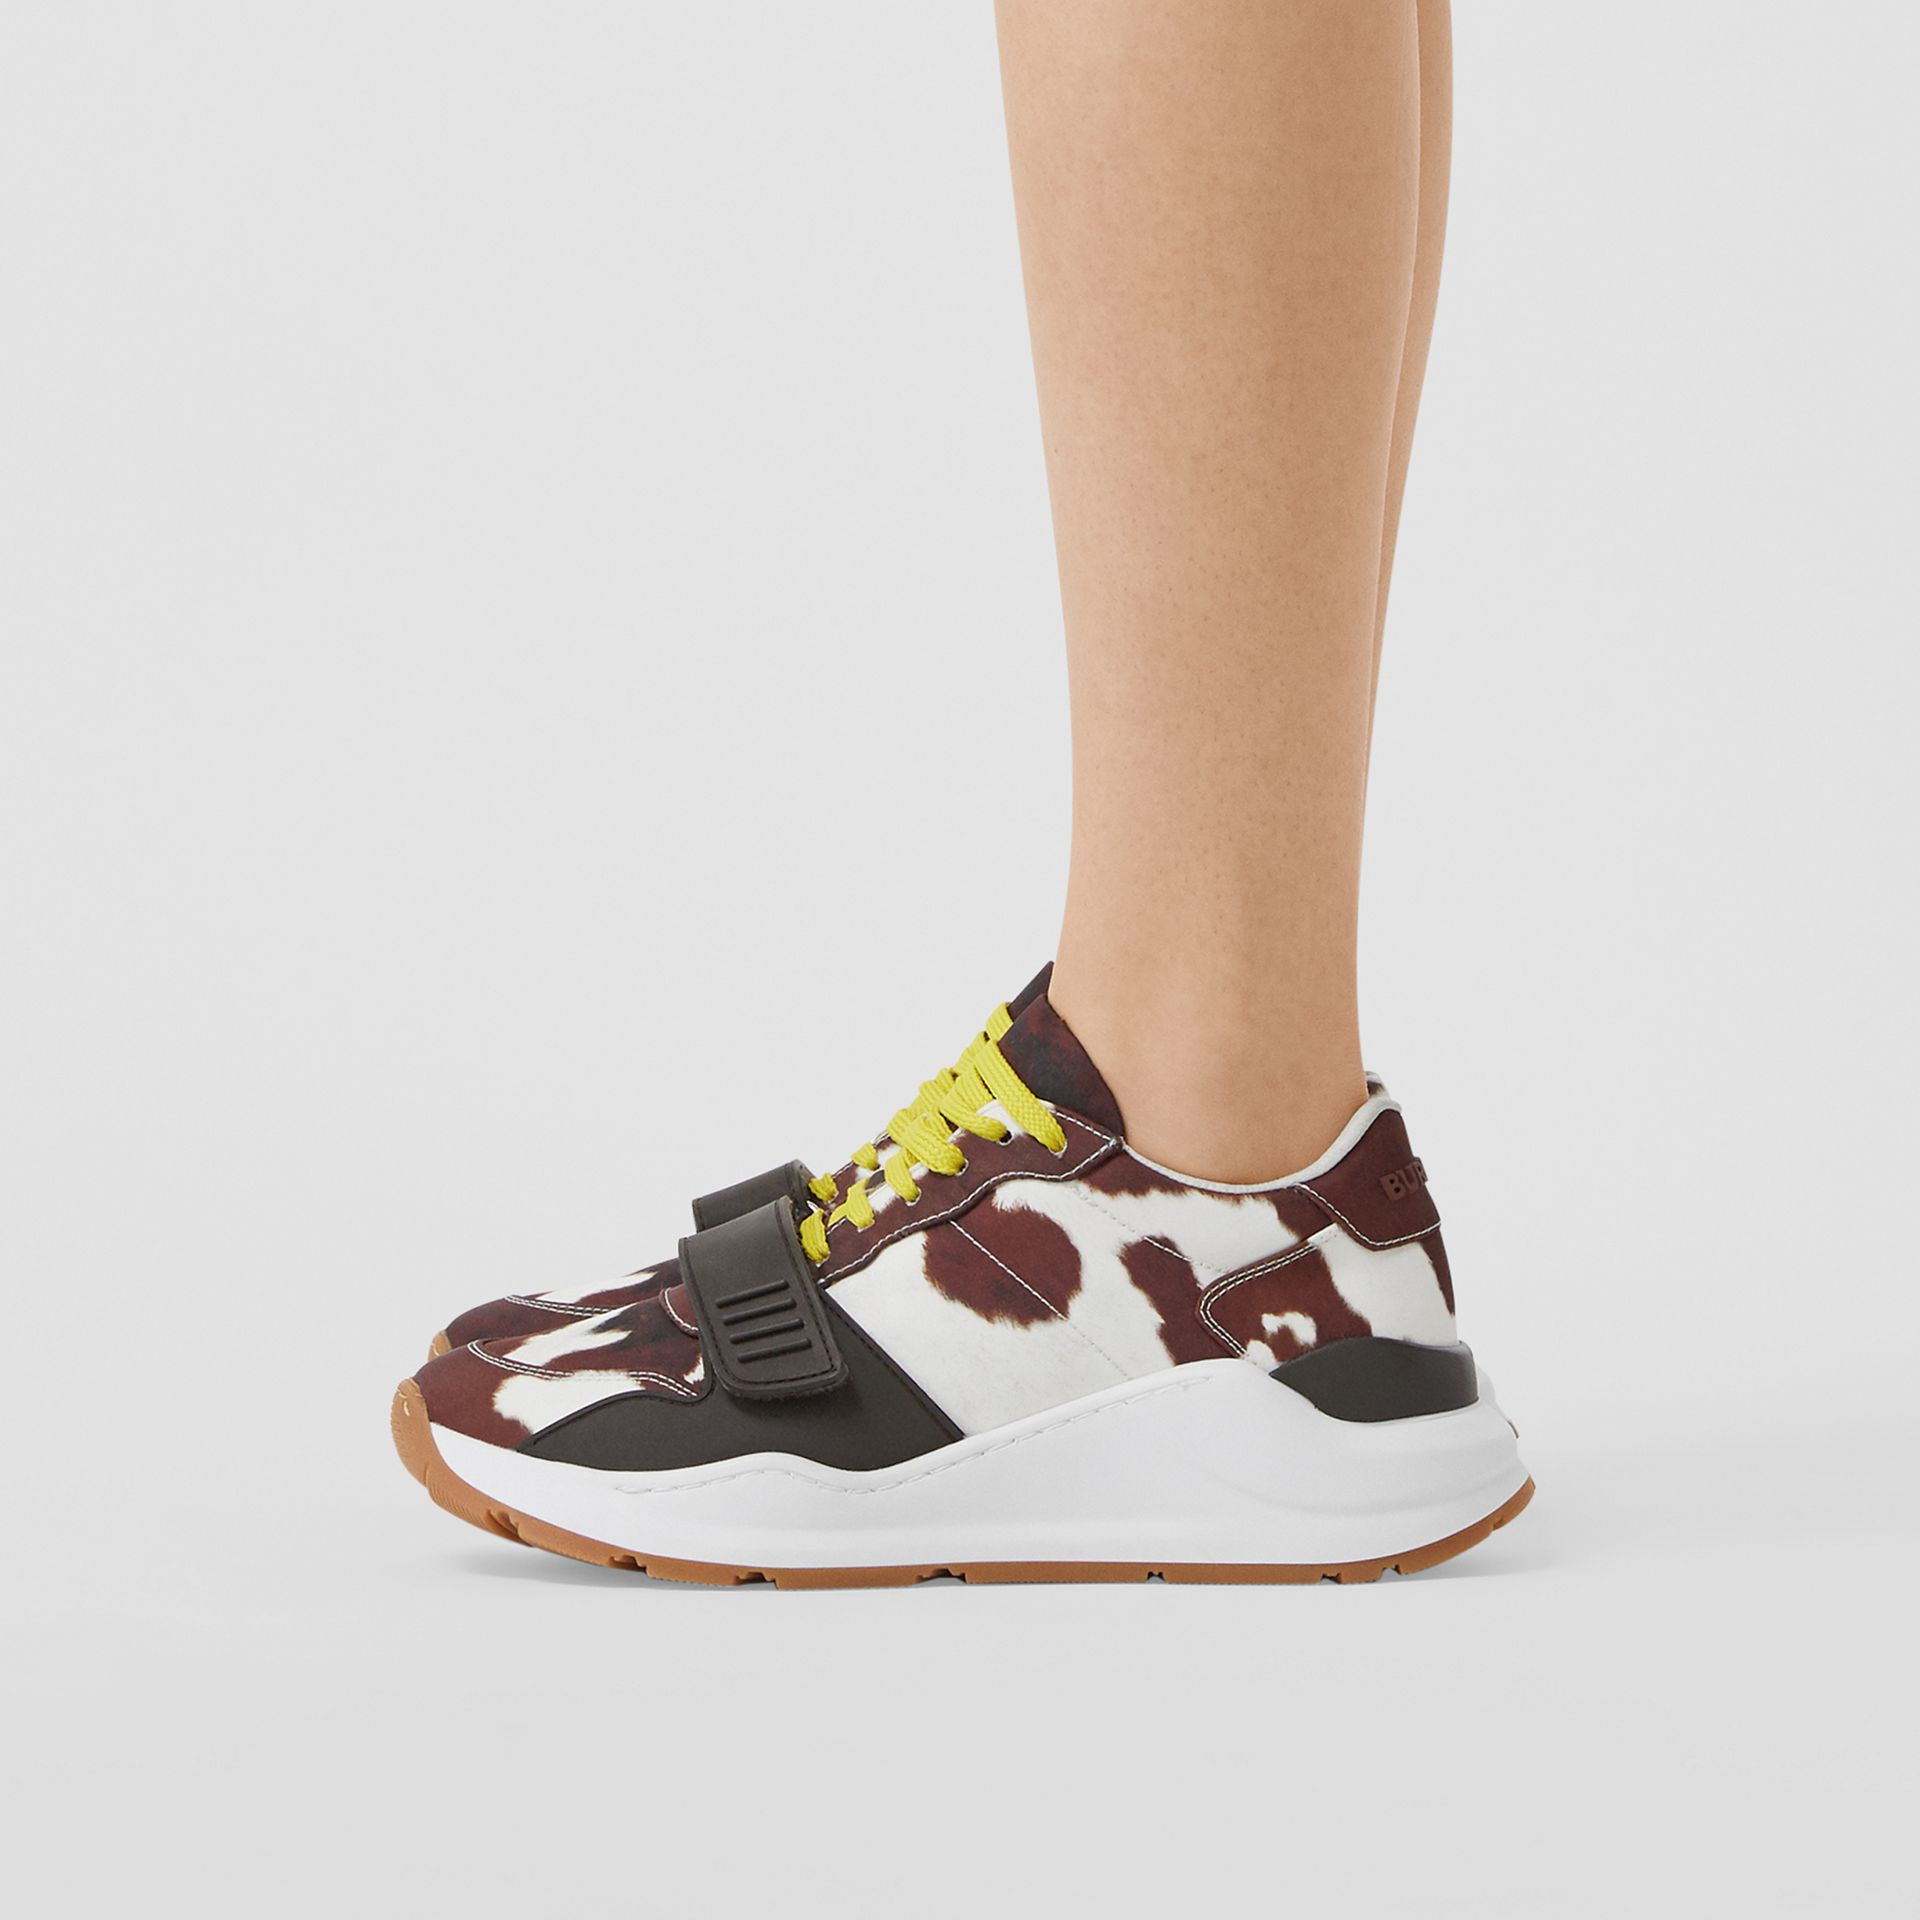 Cow Print Nylon Sneakers in Brown - Women | Burberry Hong Kong S.A.R - gallery image 2